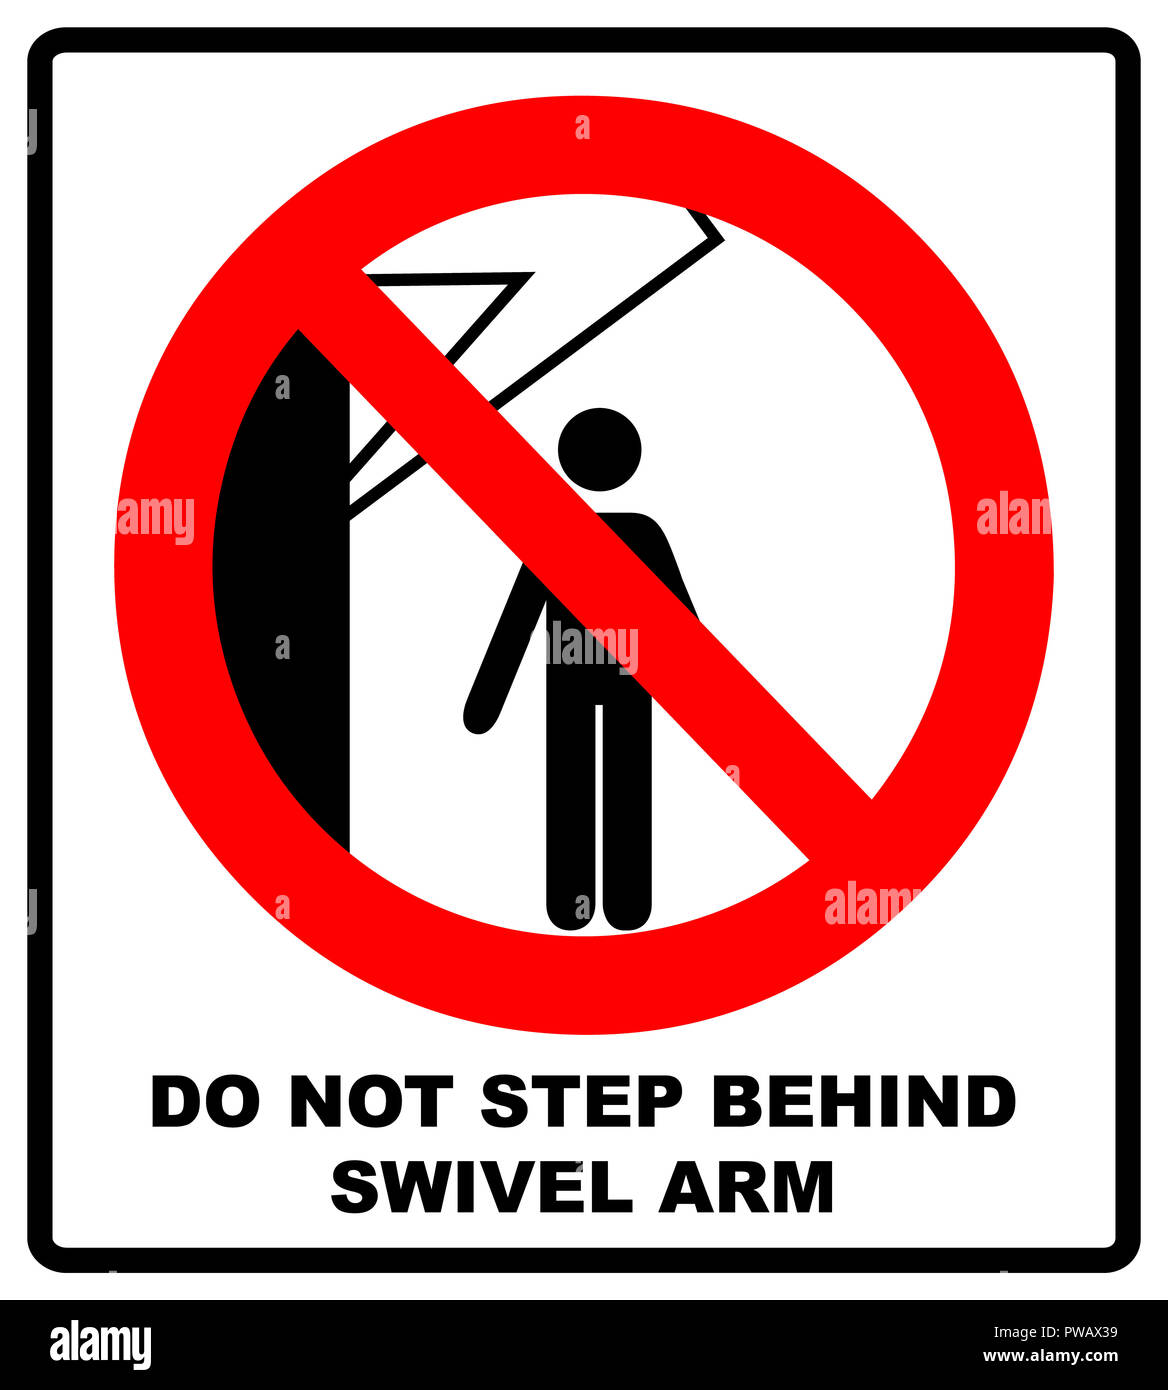 do not step behind swivel arm sign no people under raised load